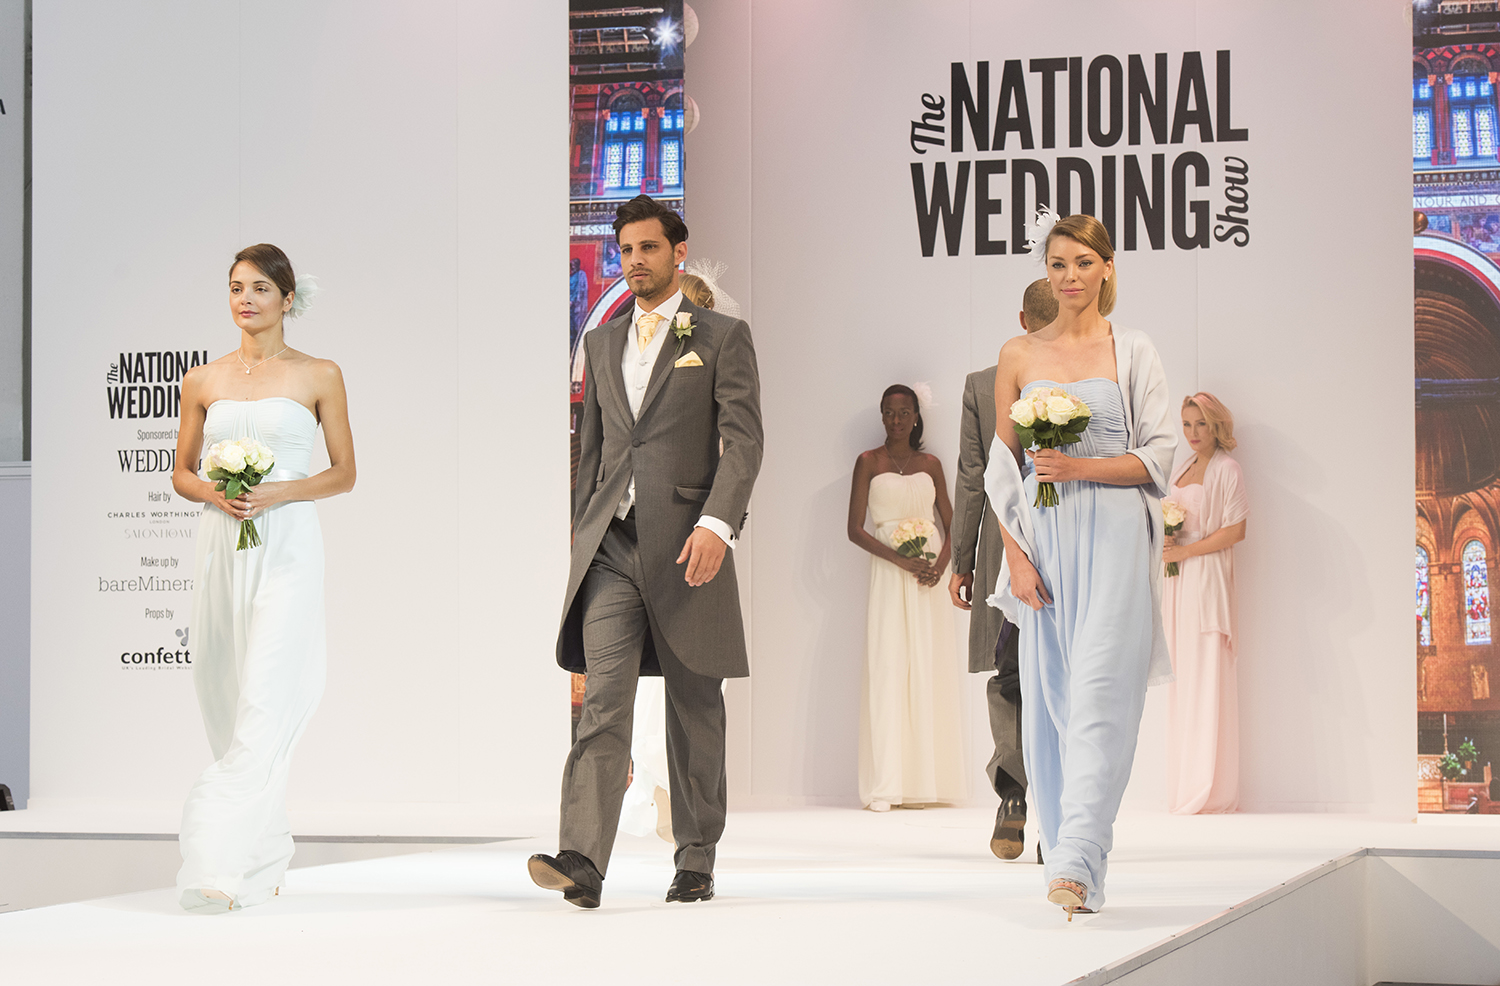 The Catwalk at The National Wedding Show